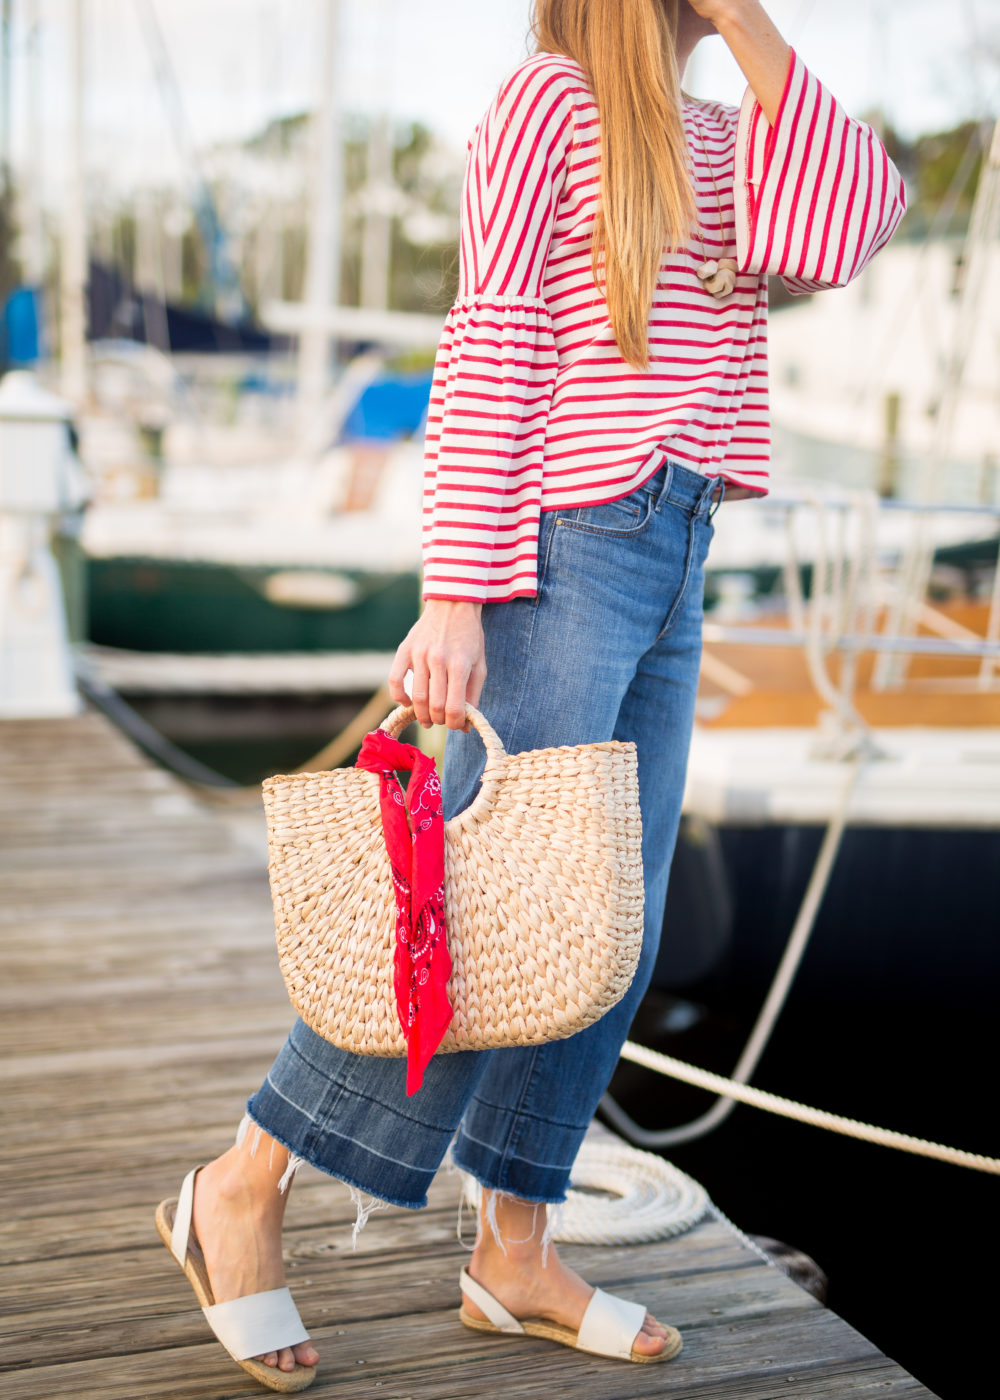 A Classic Striped Look for Fall, Wearing Wide Leg Pants + Striped Top + Straw Bag with Bandana | Sunshine Style